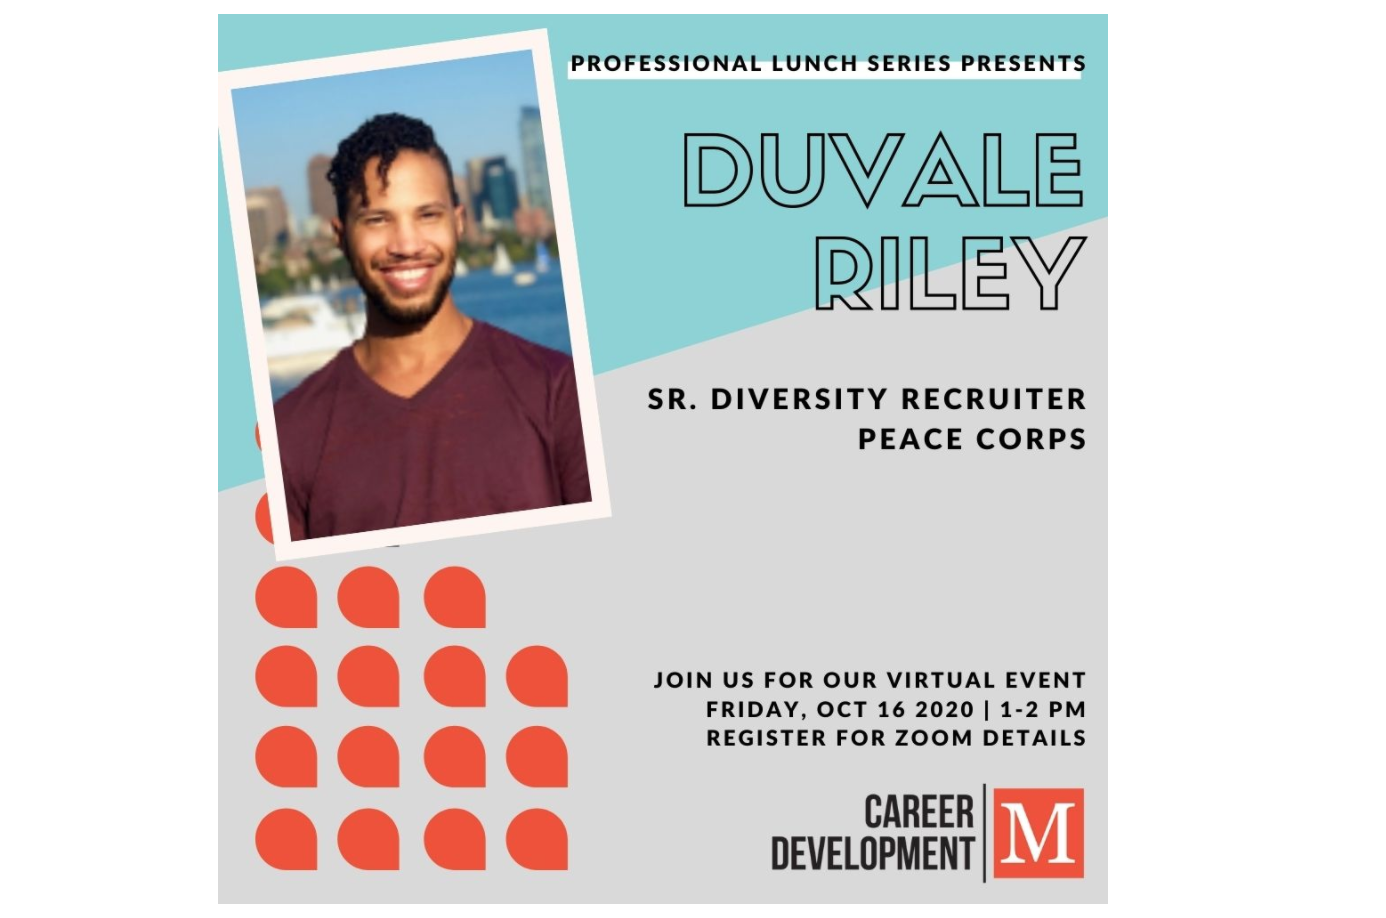 Professional Lunch Series: DuVale Riley, Senior Diversity Recruiter at Peace Corps